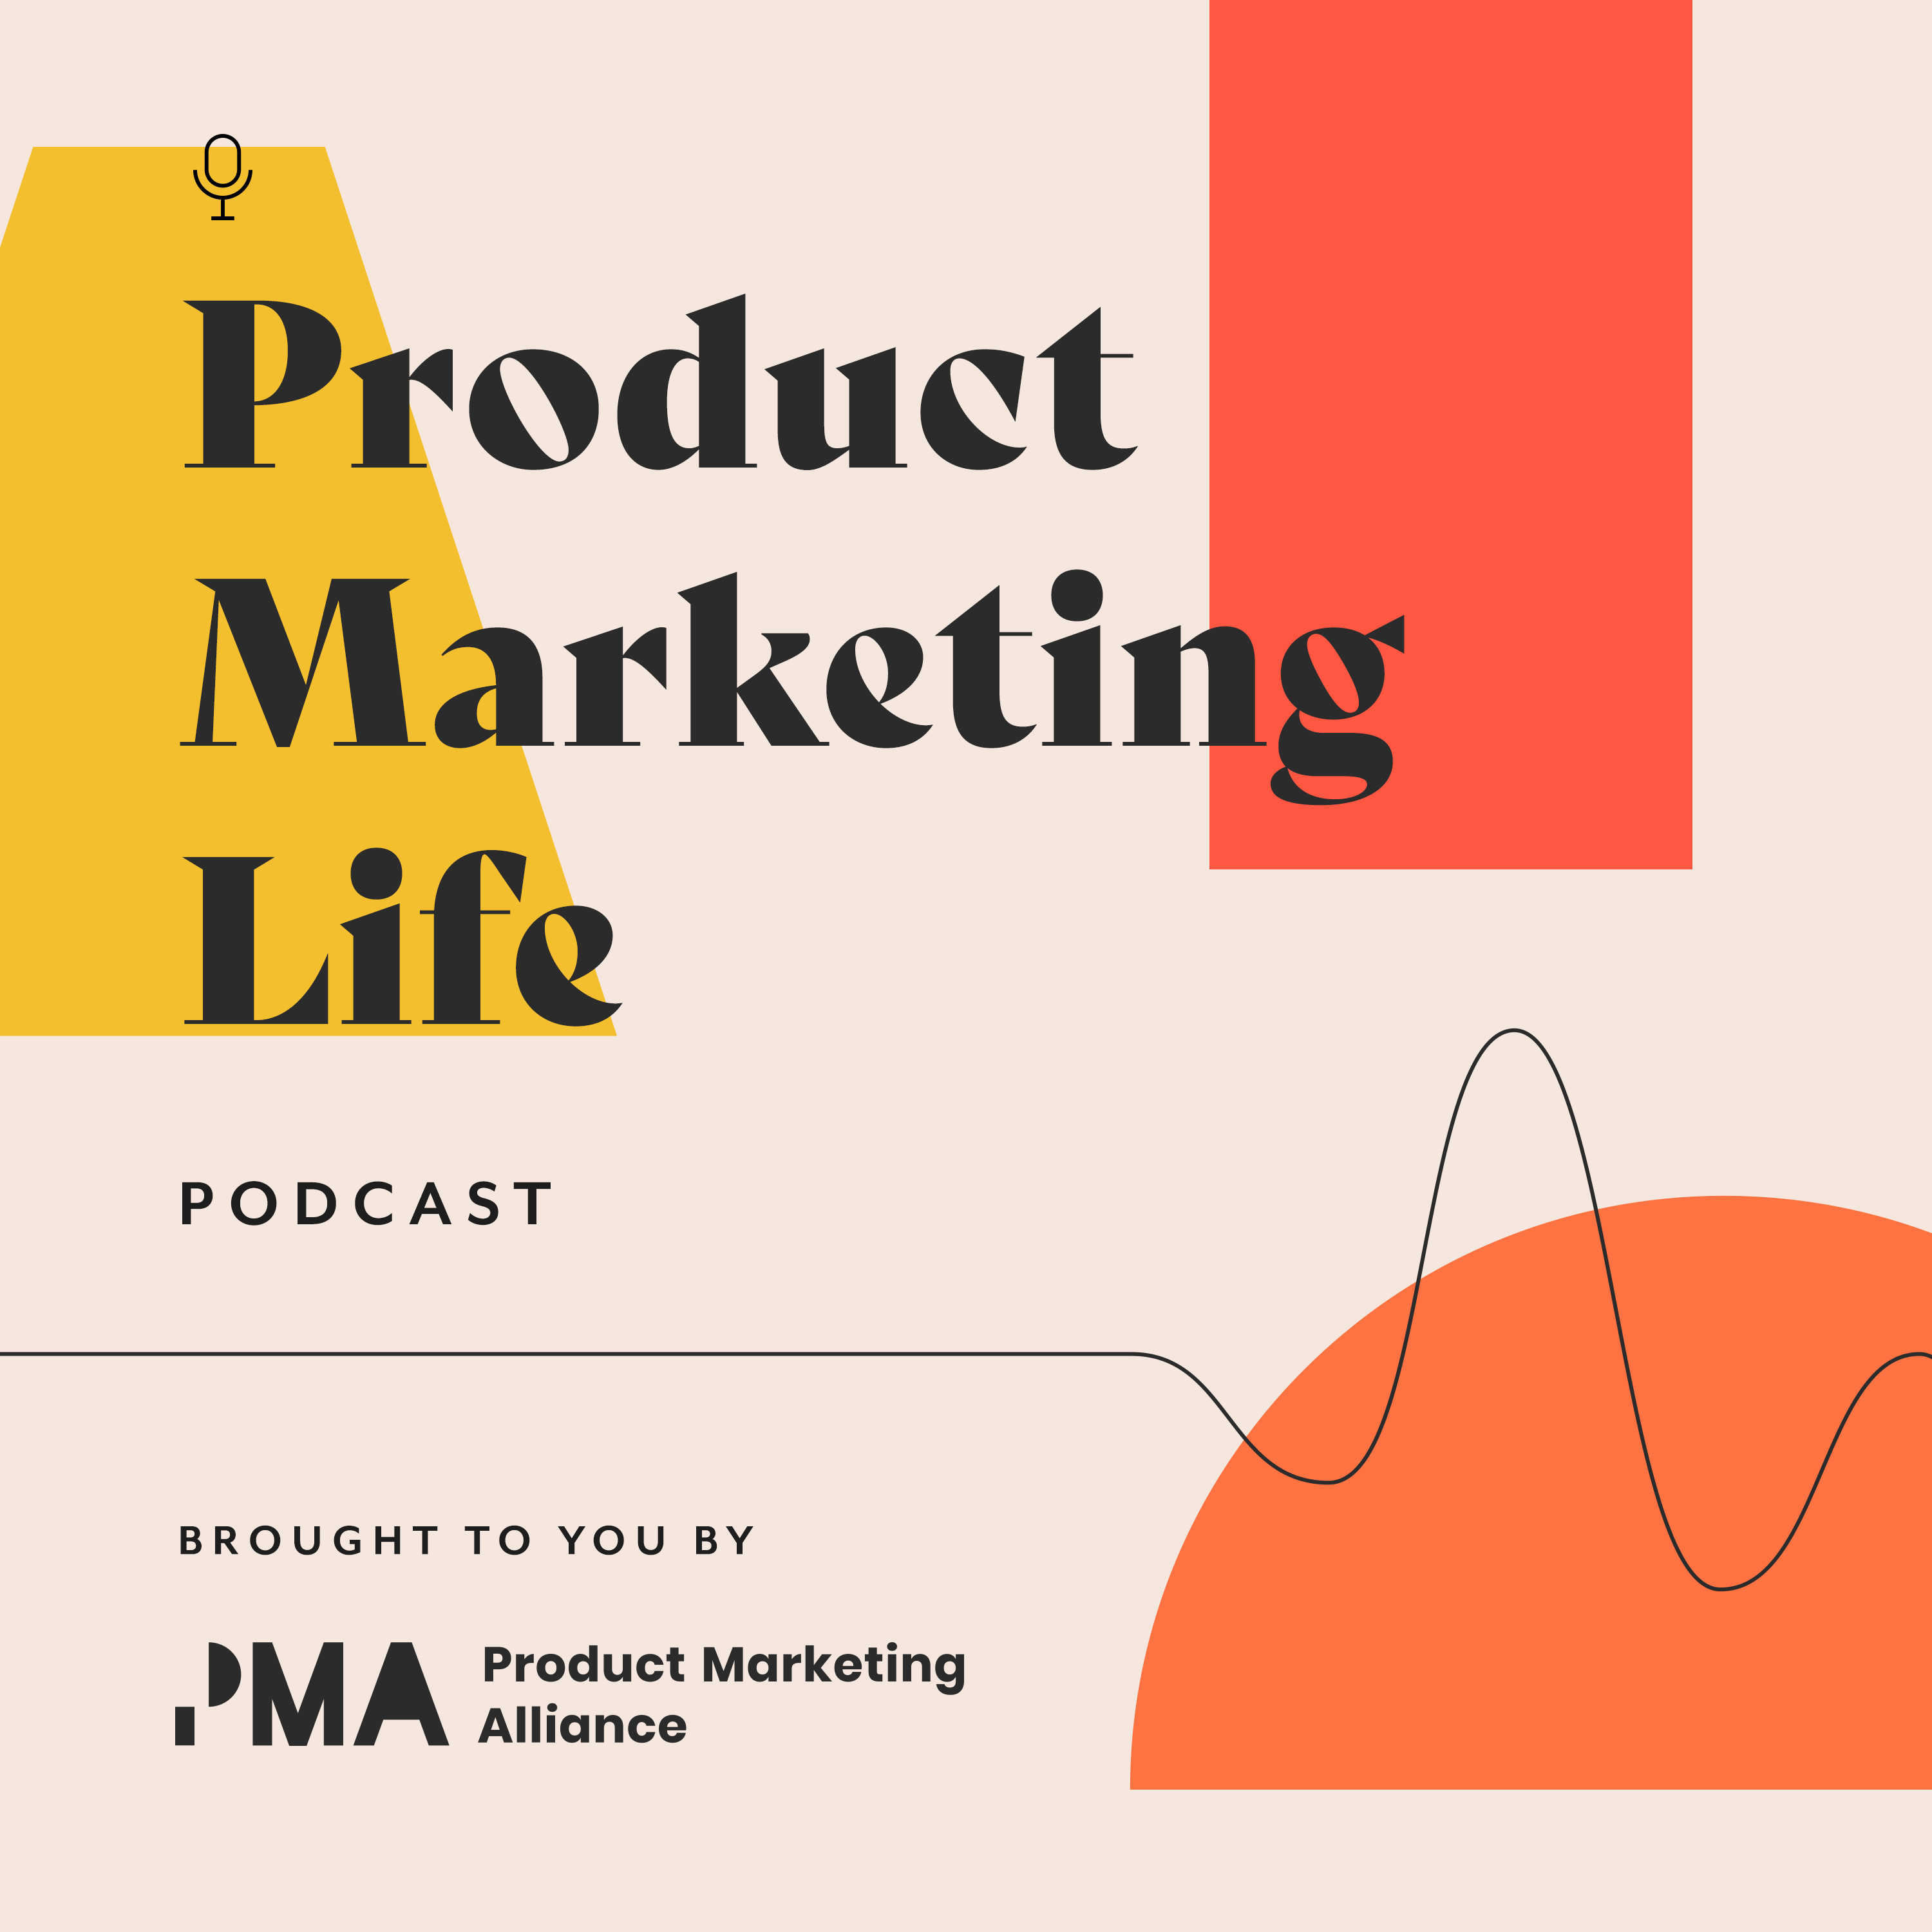 Show artwork for Product Marketing Life